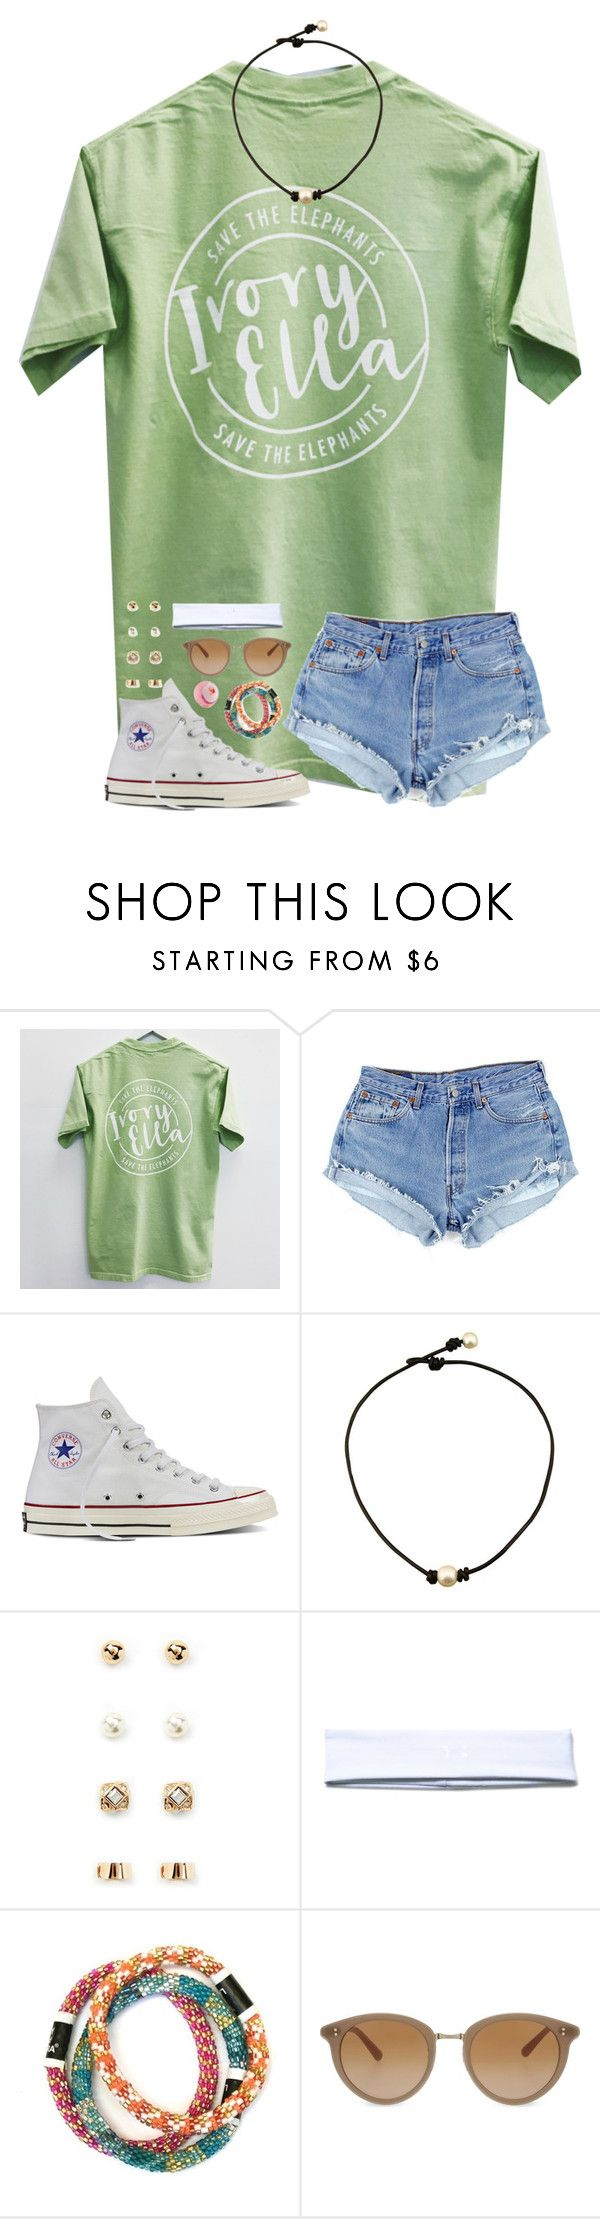 """Auditions open for @preppy-gals"" by mmprep ❤ liked on Polyvore featuring Converse, Forever 21, Under Armour and Oliver Peoples"